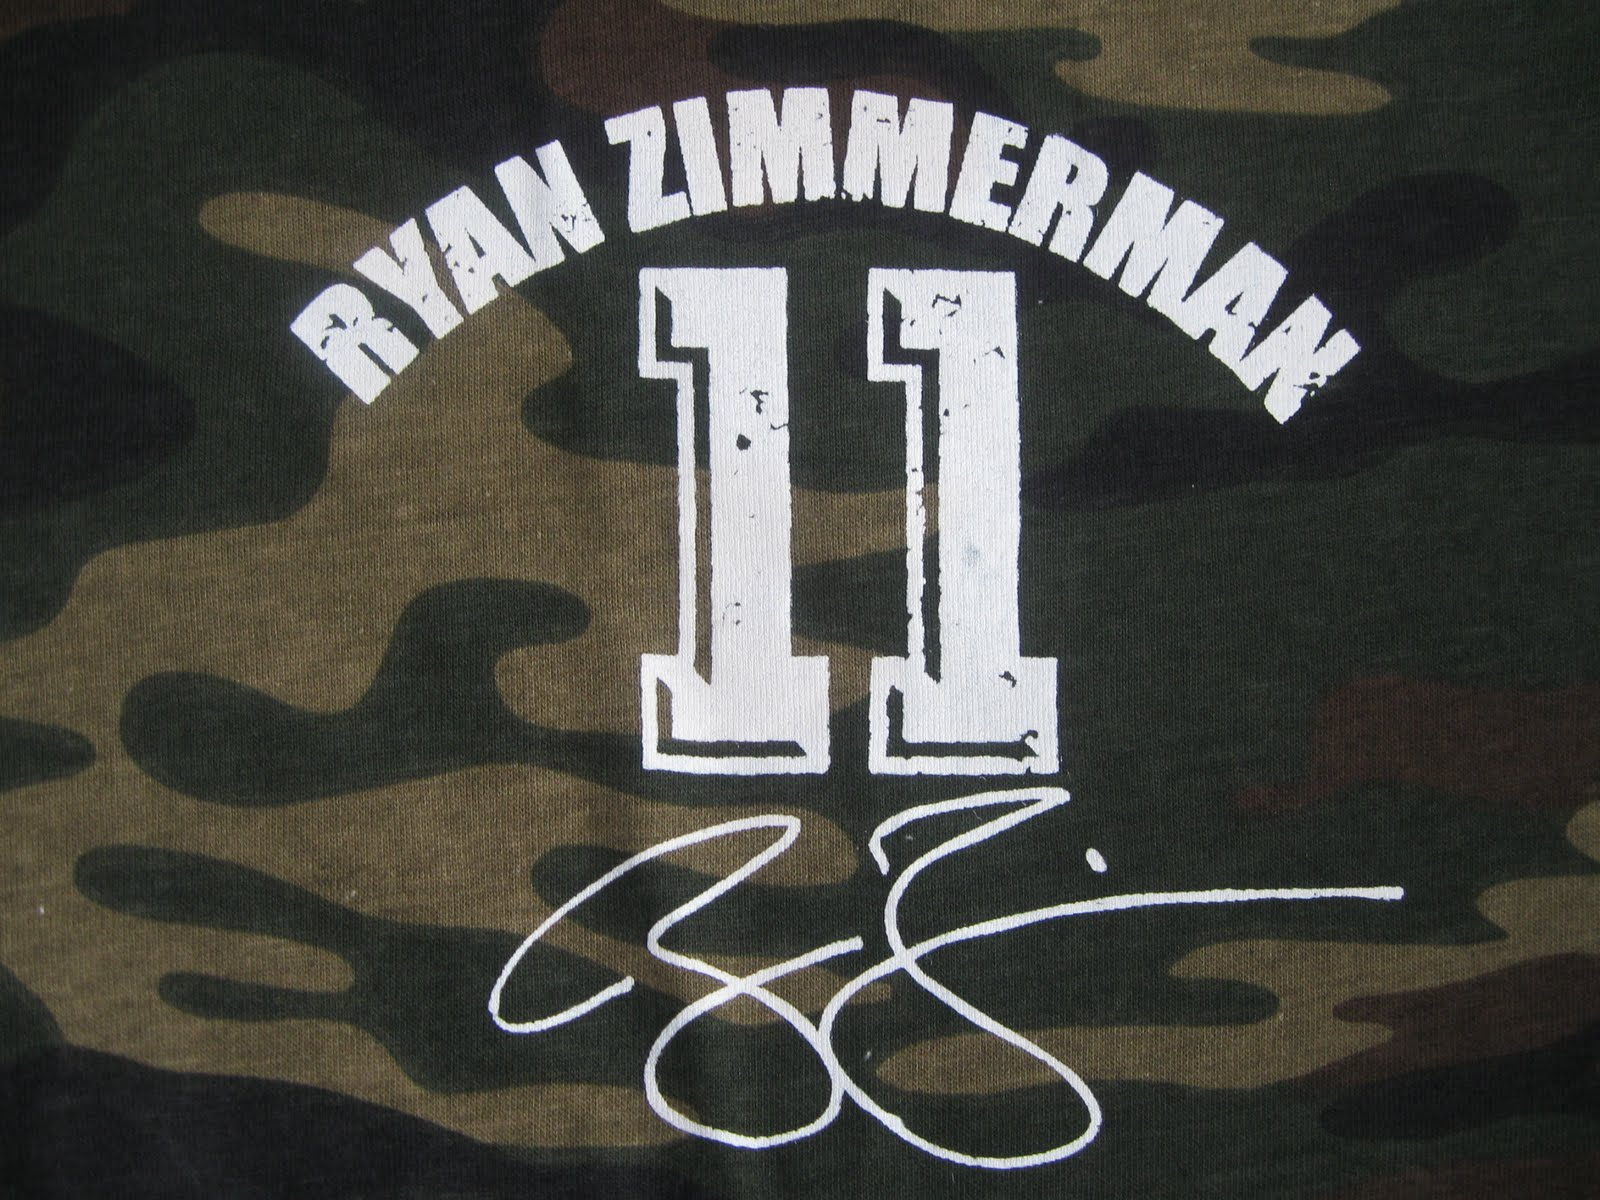 In an effort to assist severely injured members of our armed forces, Our Washington Nationals Ryan Zimmerman has teamed up with The Wounded Warrior Project ...